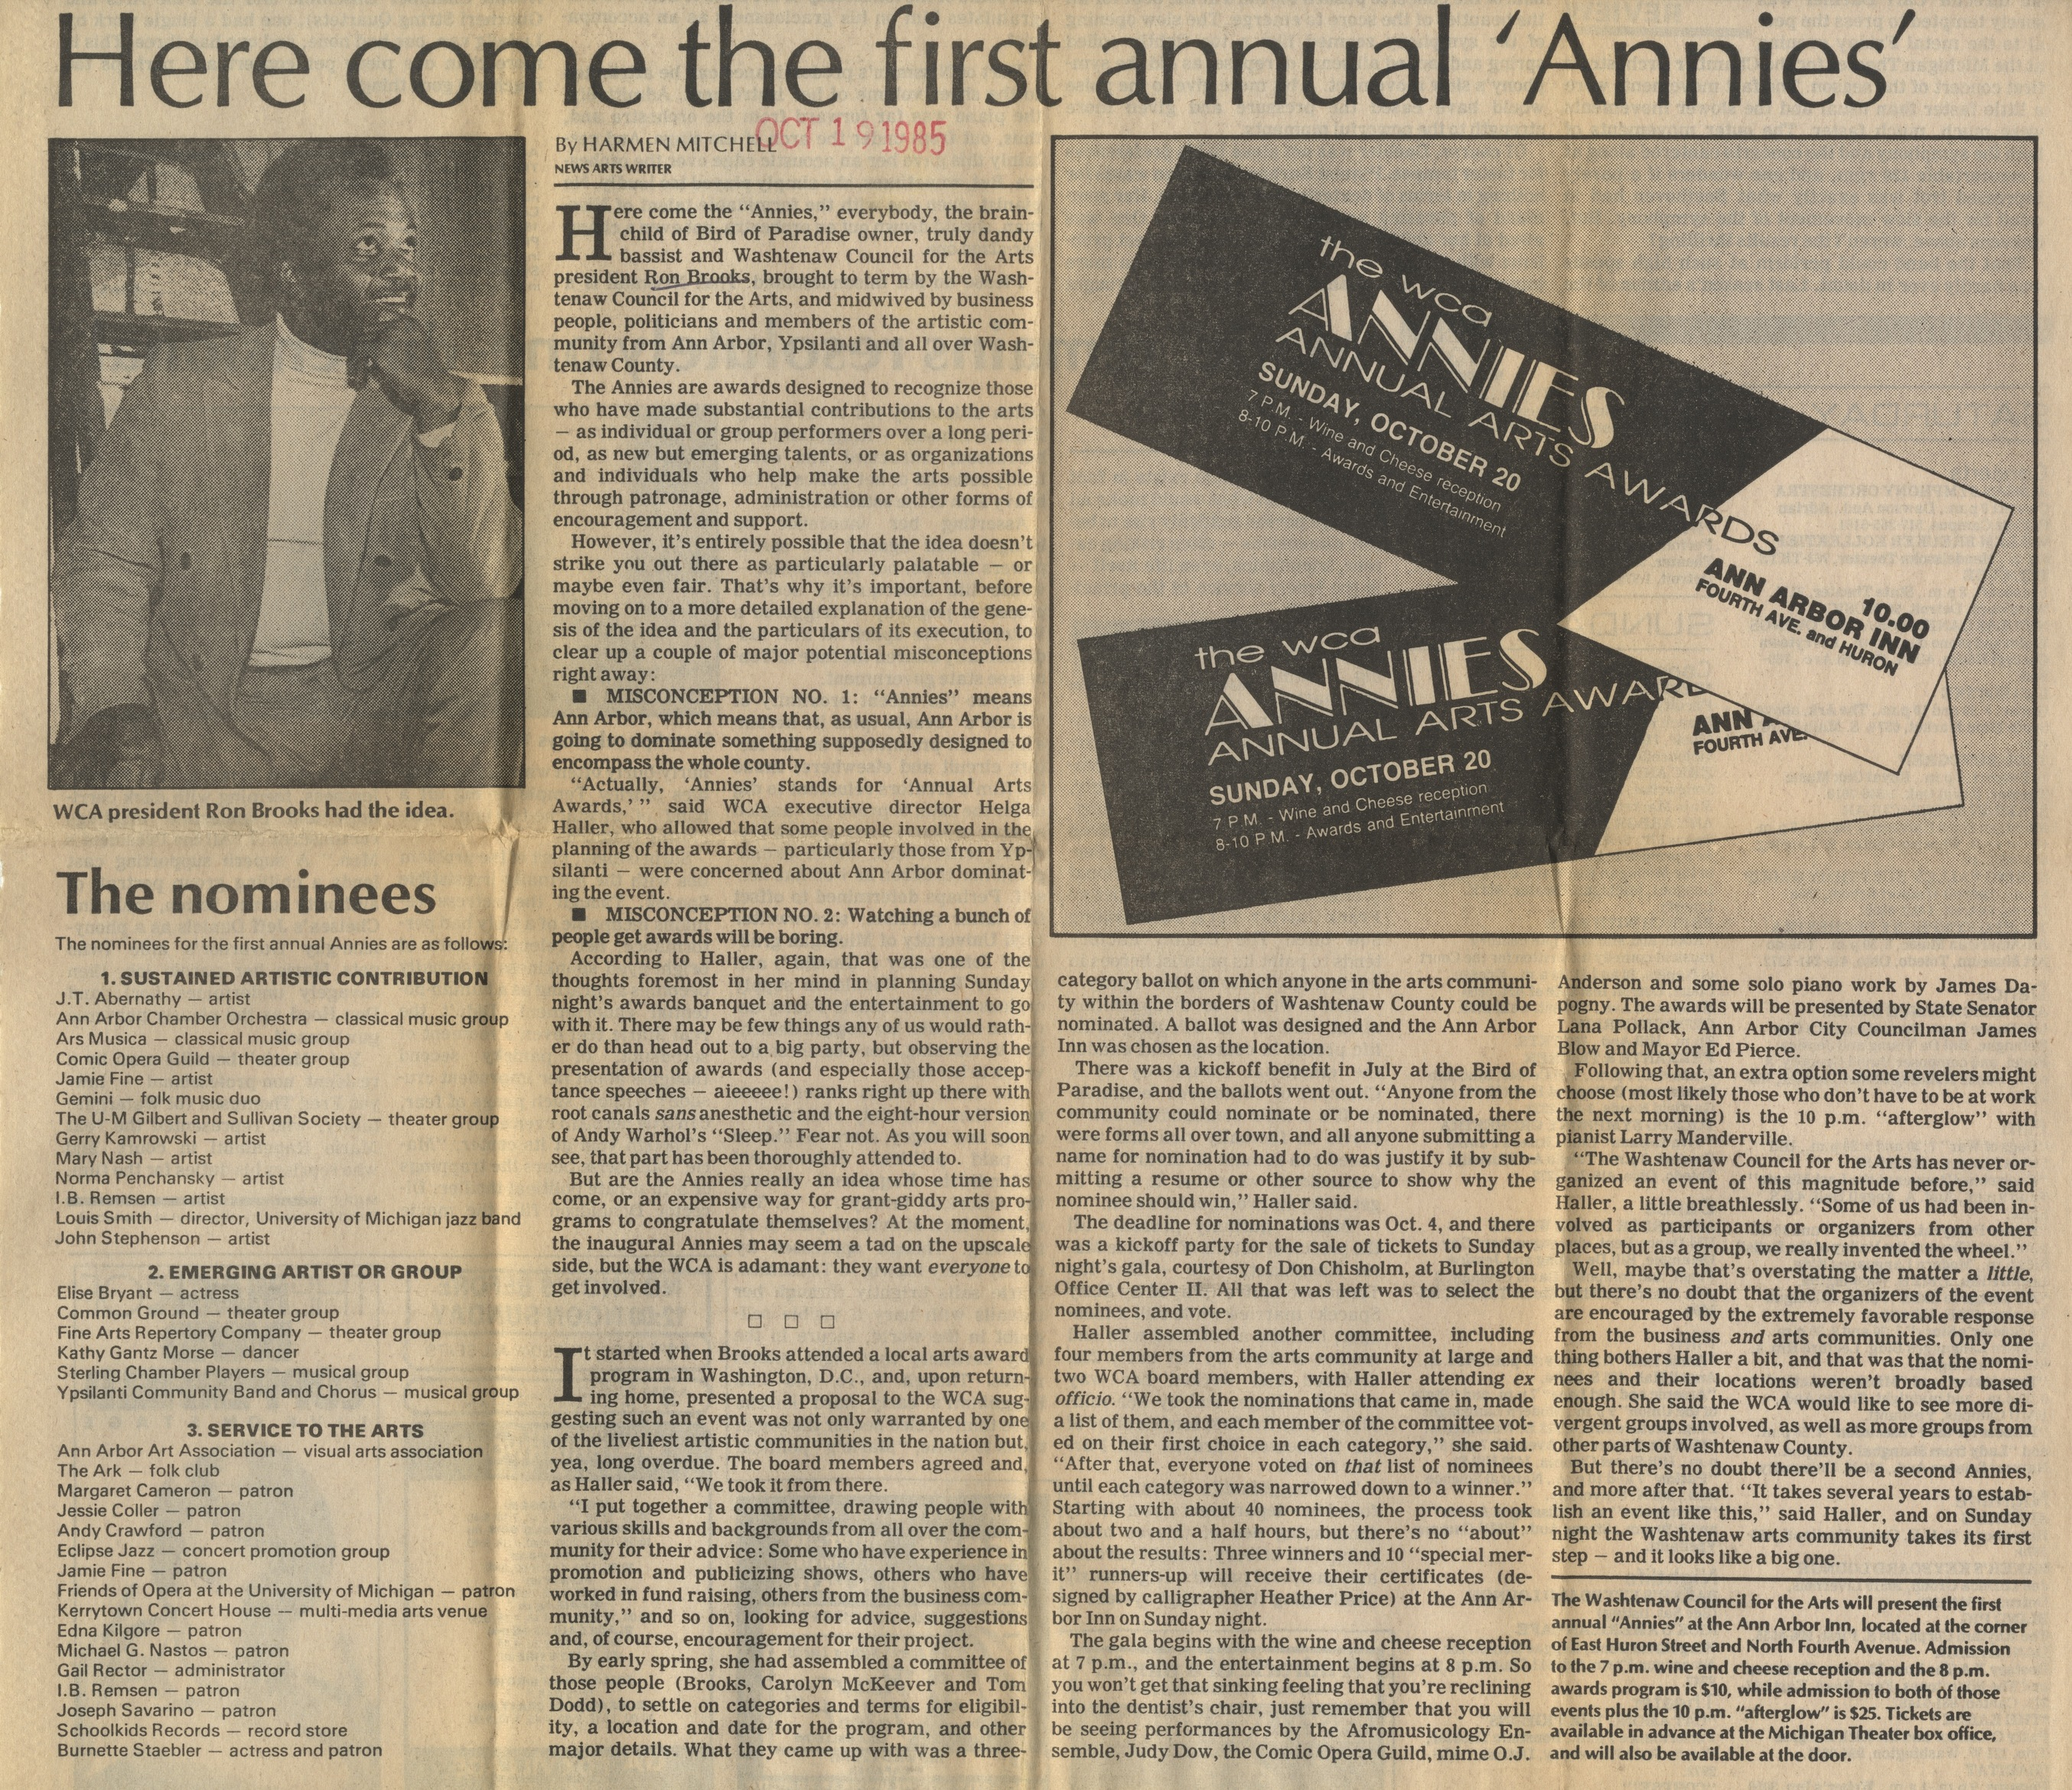 Here Come The First Annual 'Annies' image